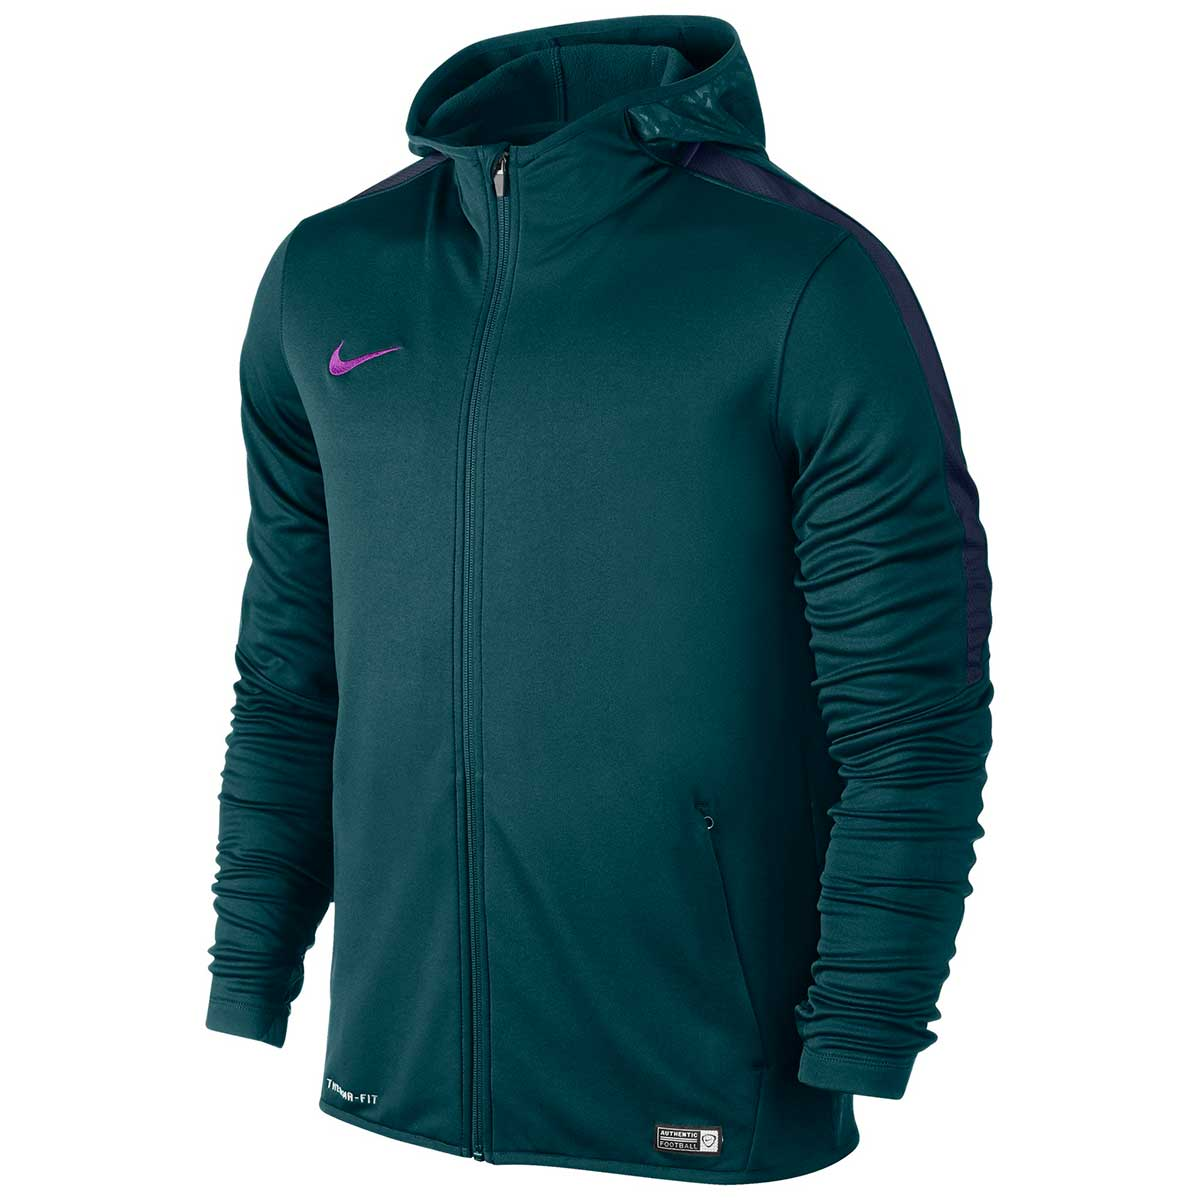 Buy Nike Full Zip Hoodie Jacket Online India cc473a559